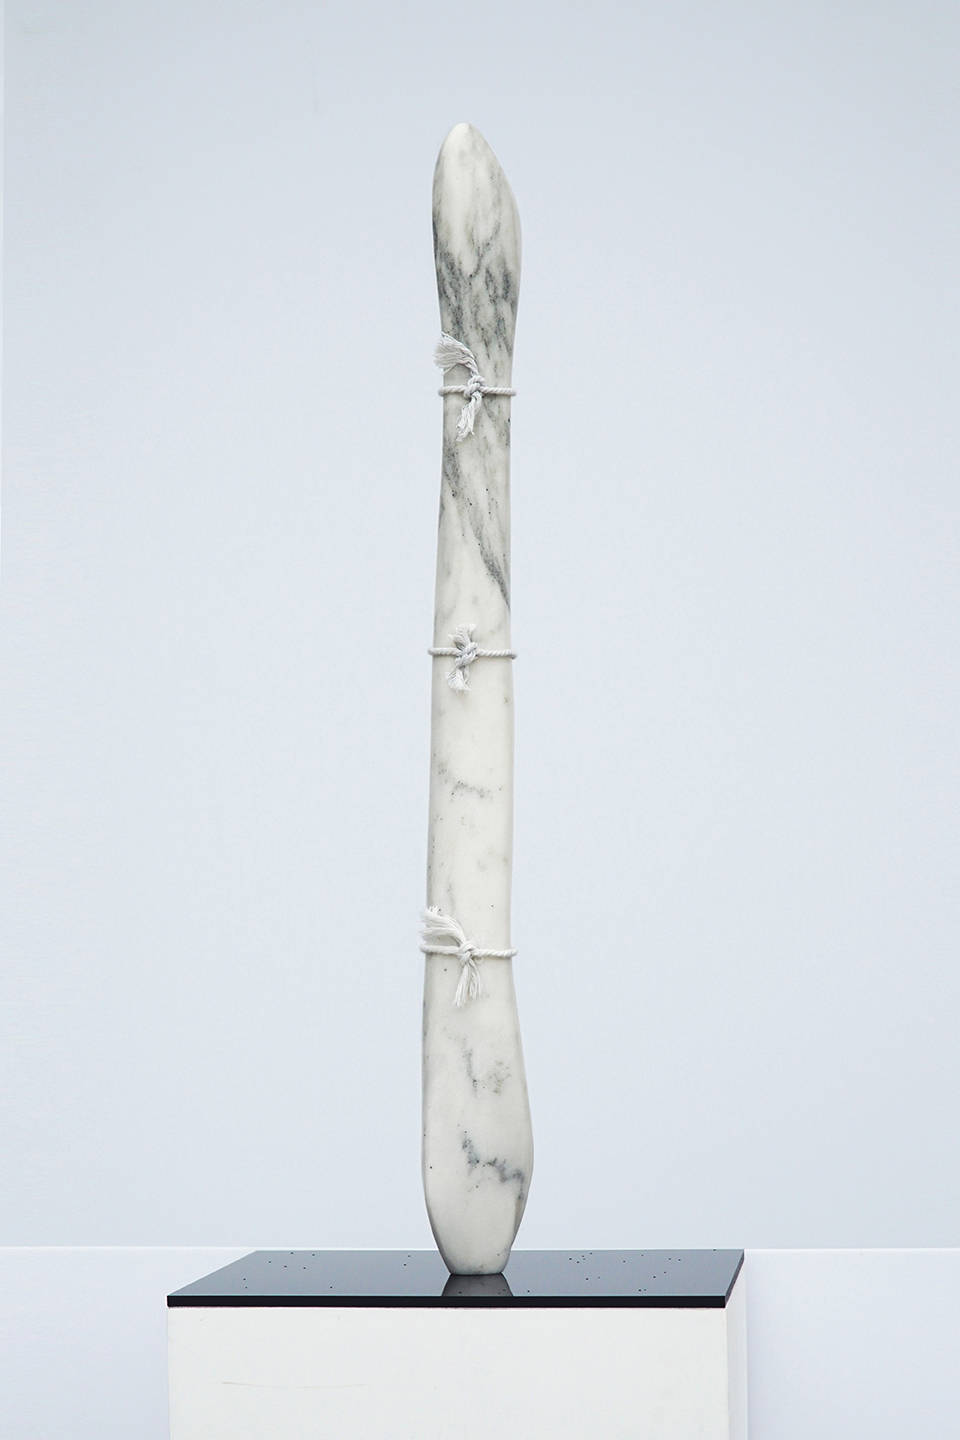 Virginia Lee Montgomery, Marble Pony I, 2019. Marble and string 15 x 3 x 3 inches (38.1 x 7.6 x 7.6 cm)